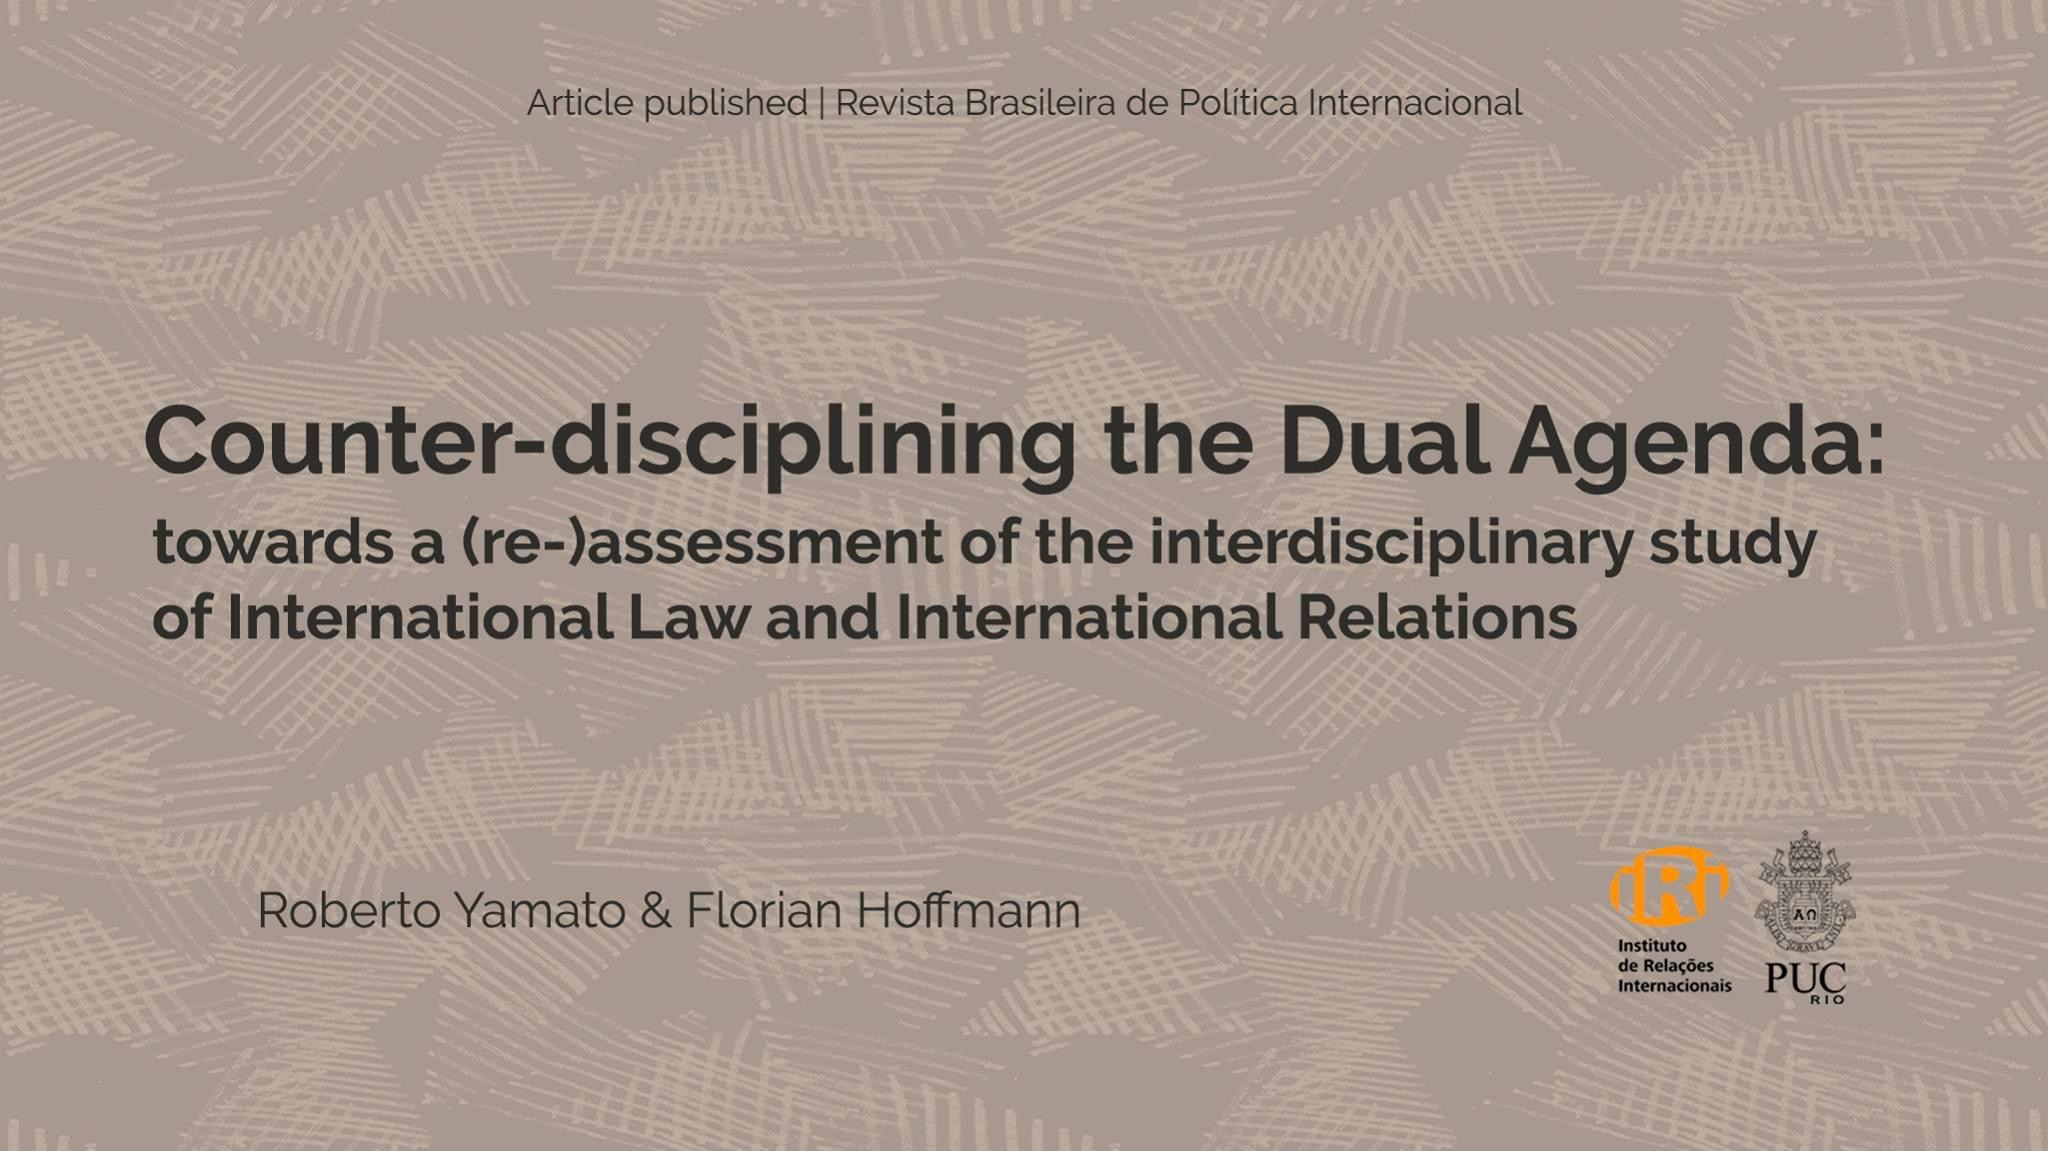 Counter-disciplining the Dual Agenda: towards a (re-)assessment of the interdisciplinary study of International Law and International Relations